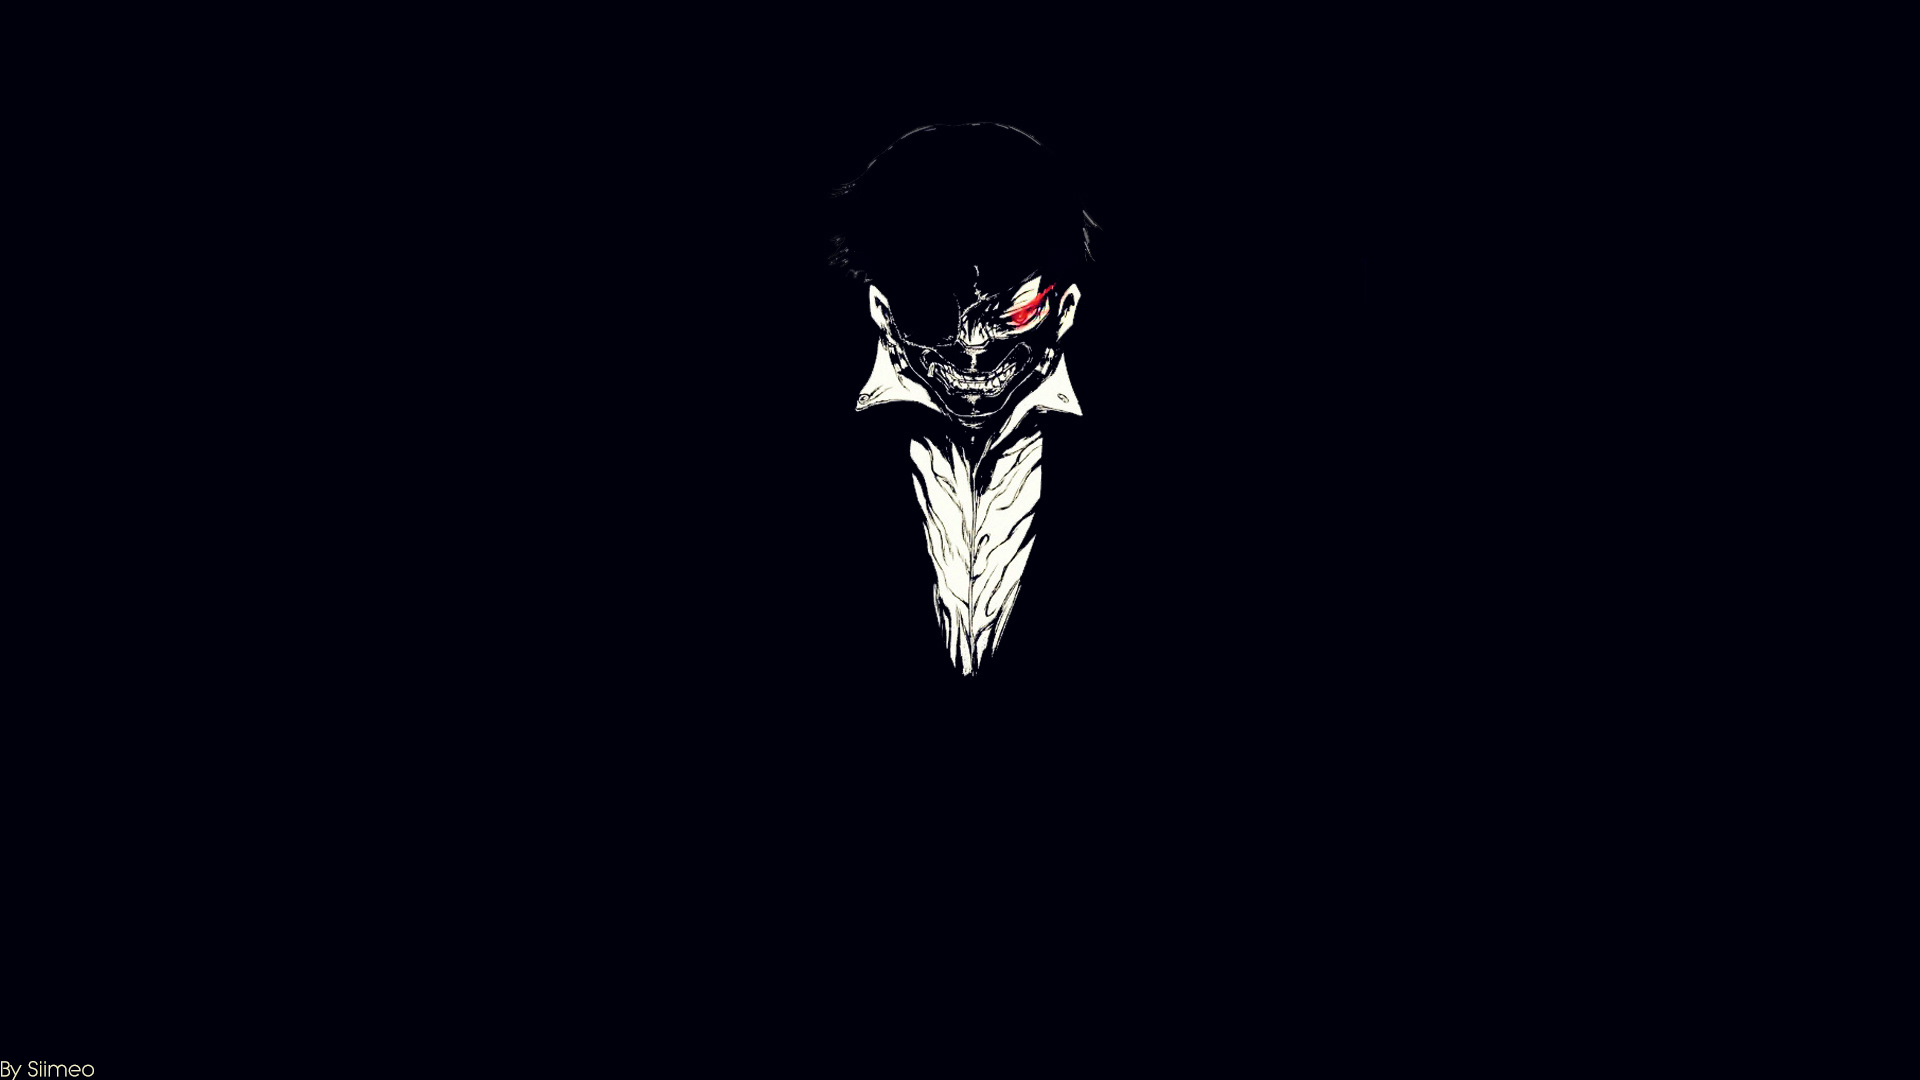 49 ] Tokyo Ghoul Wallpaper IPhone On WallpaperSafari